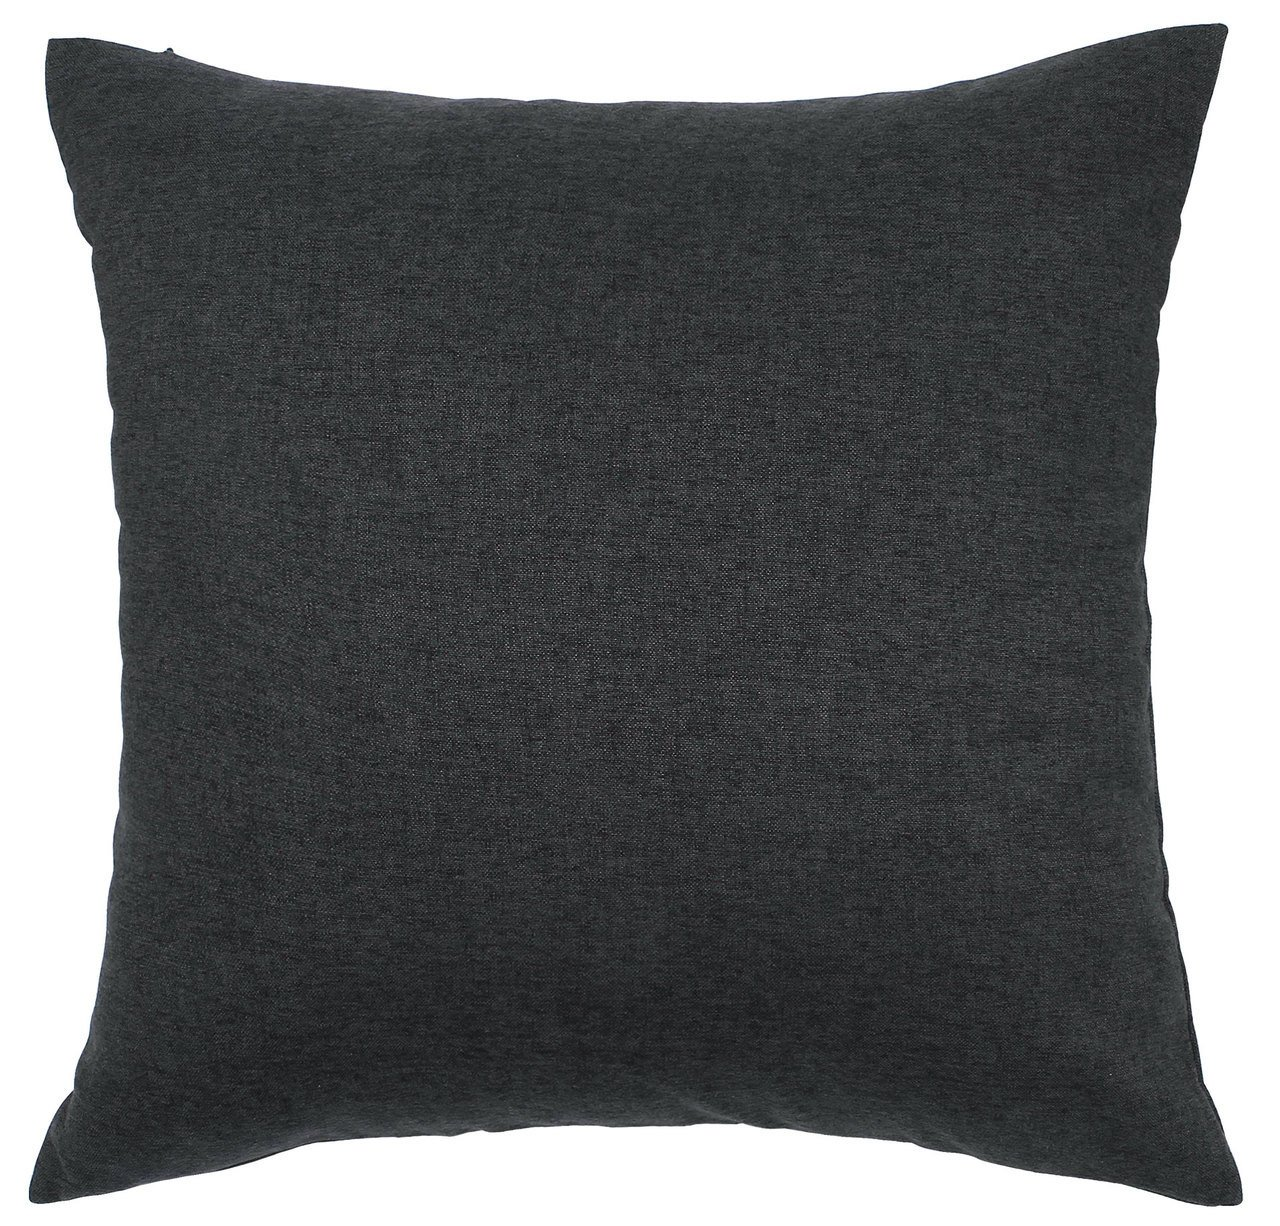 TangDepot Solid Wool-like Throw Pillow Cover/Euro Sham/Cushion Sham, Super Luxury Soft Pillow Cases - Handmade - Many Colors & Sizes Avaliable - (28''x28'', Dark Gray)